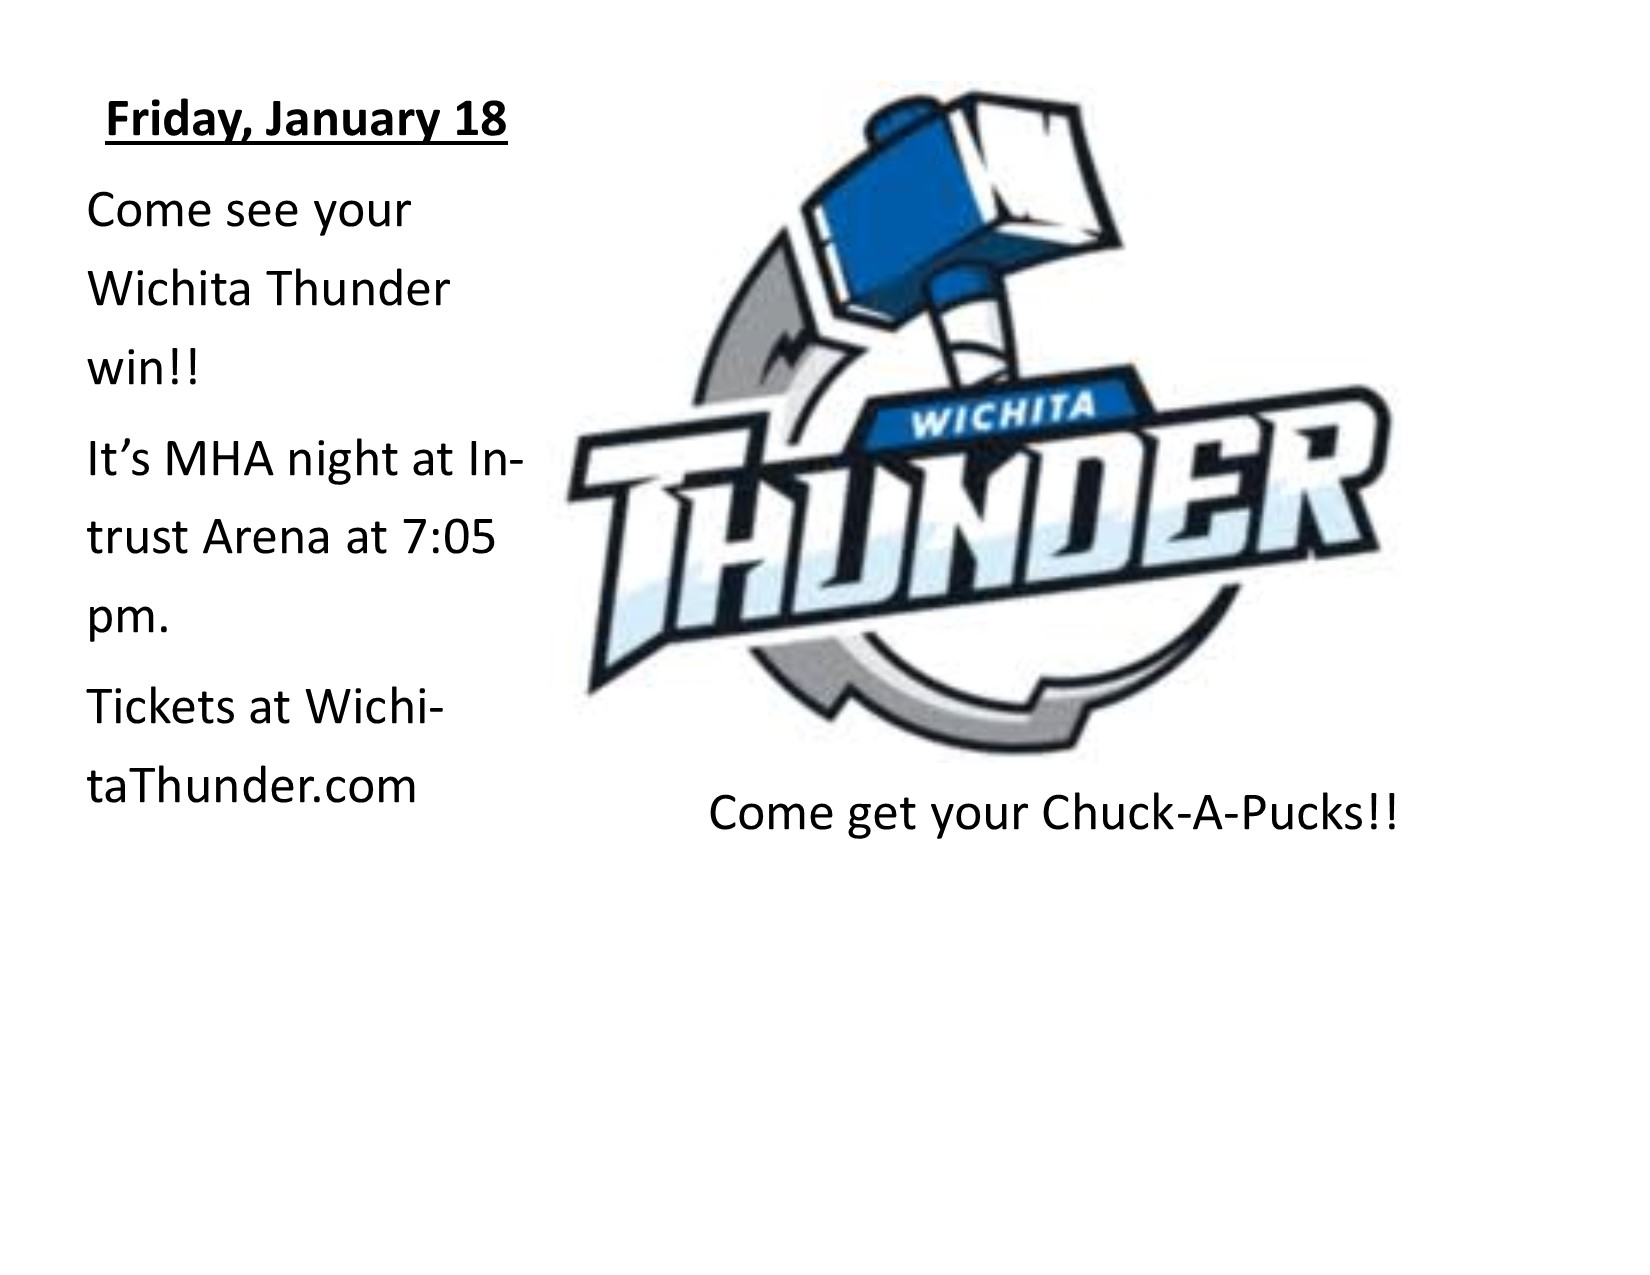 MHA Night at Wichita Thunder